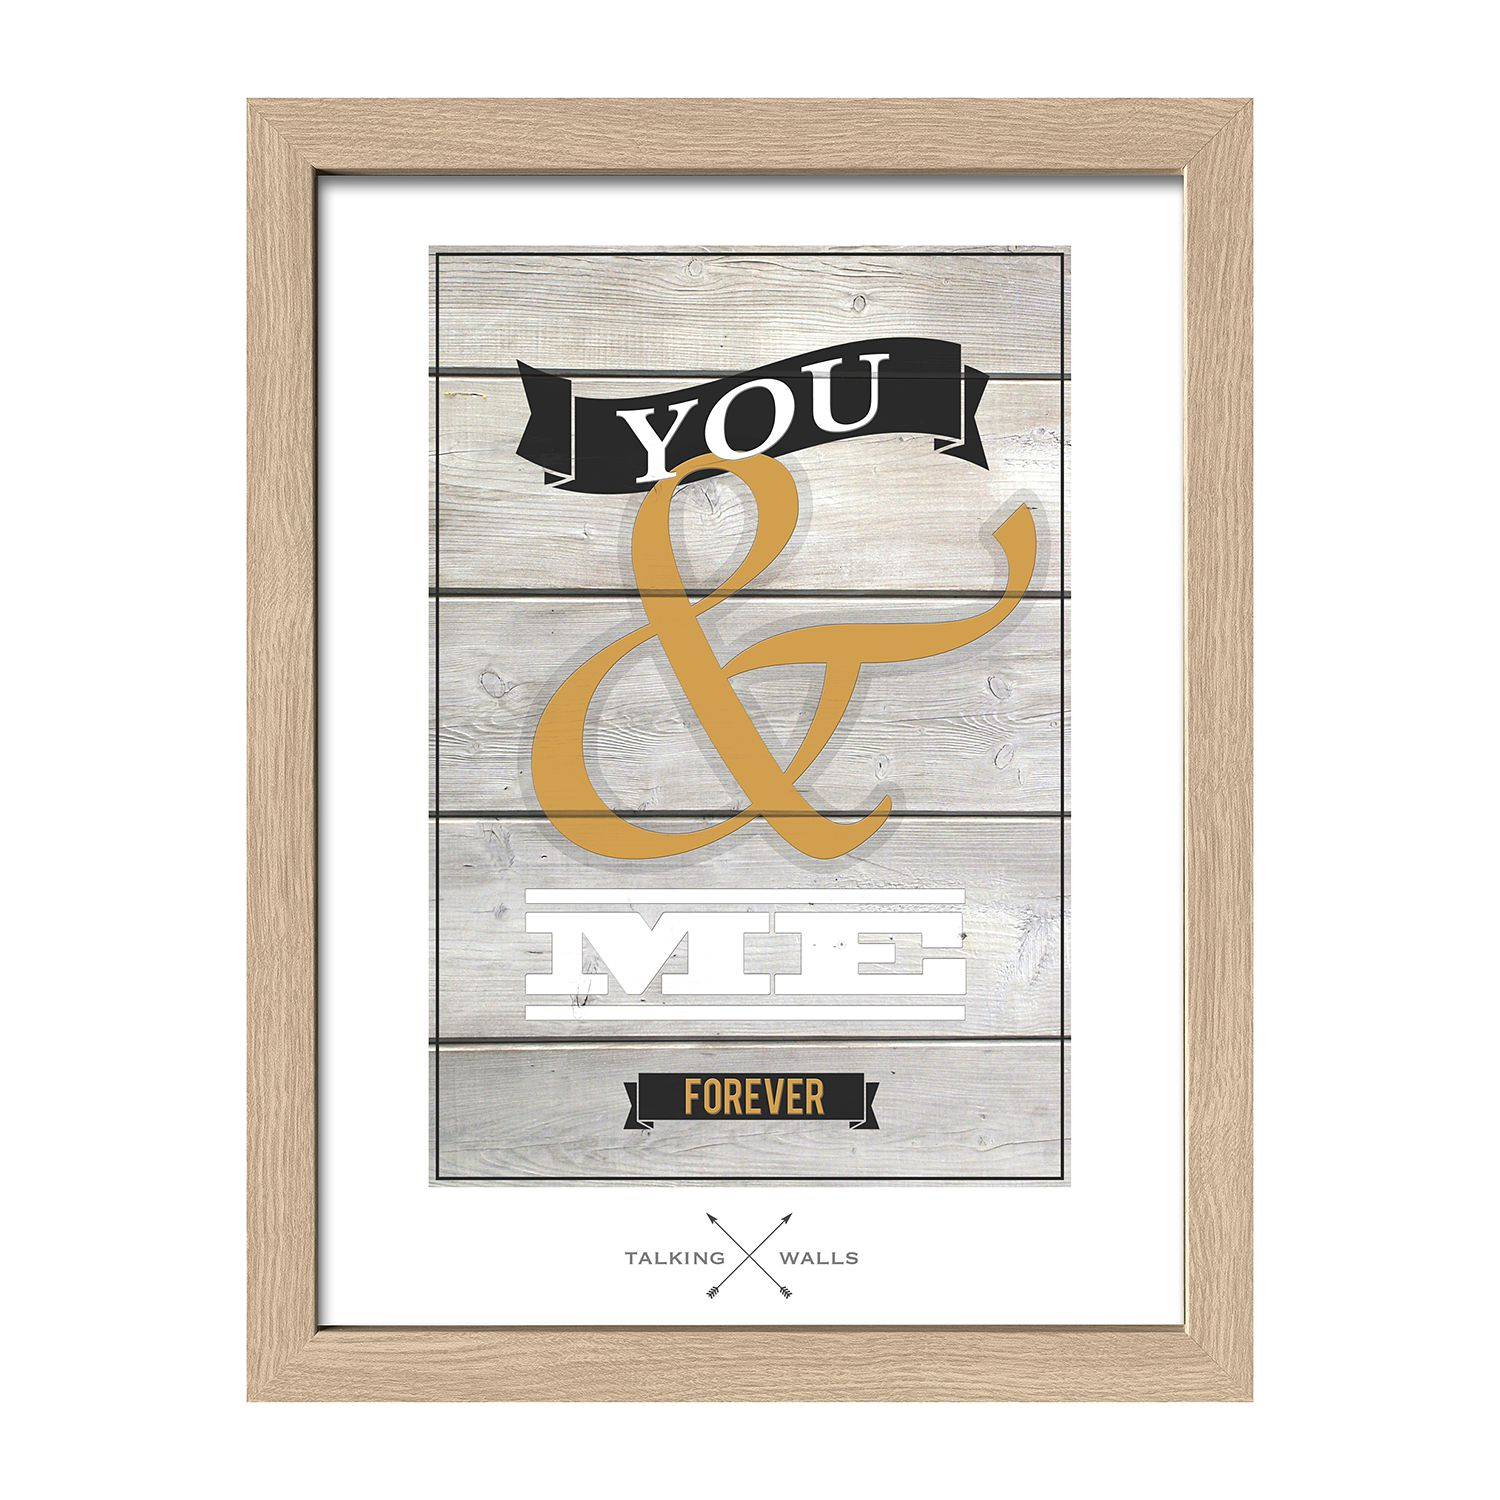 Afbeelding You & Me Forever - beige/wit, Pro Art